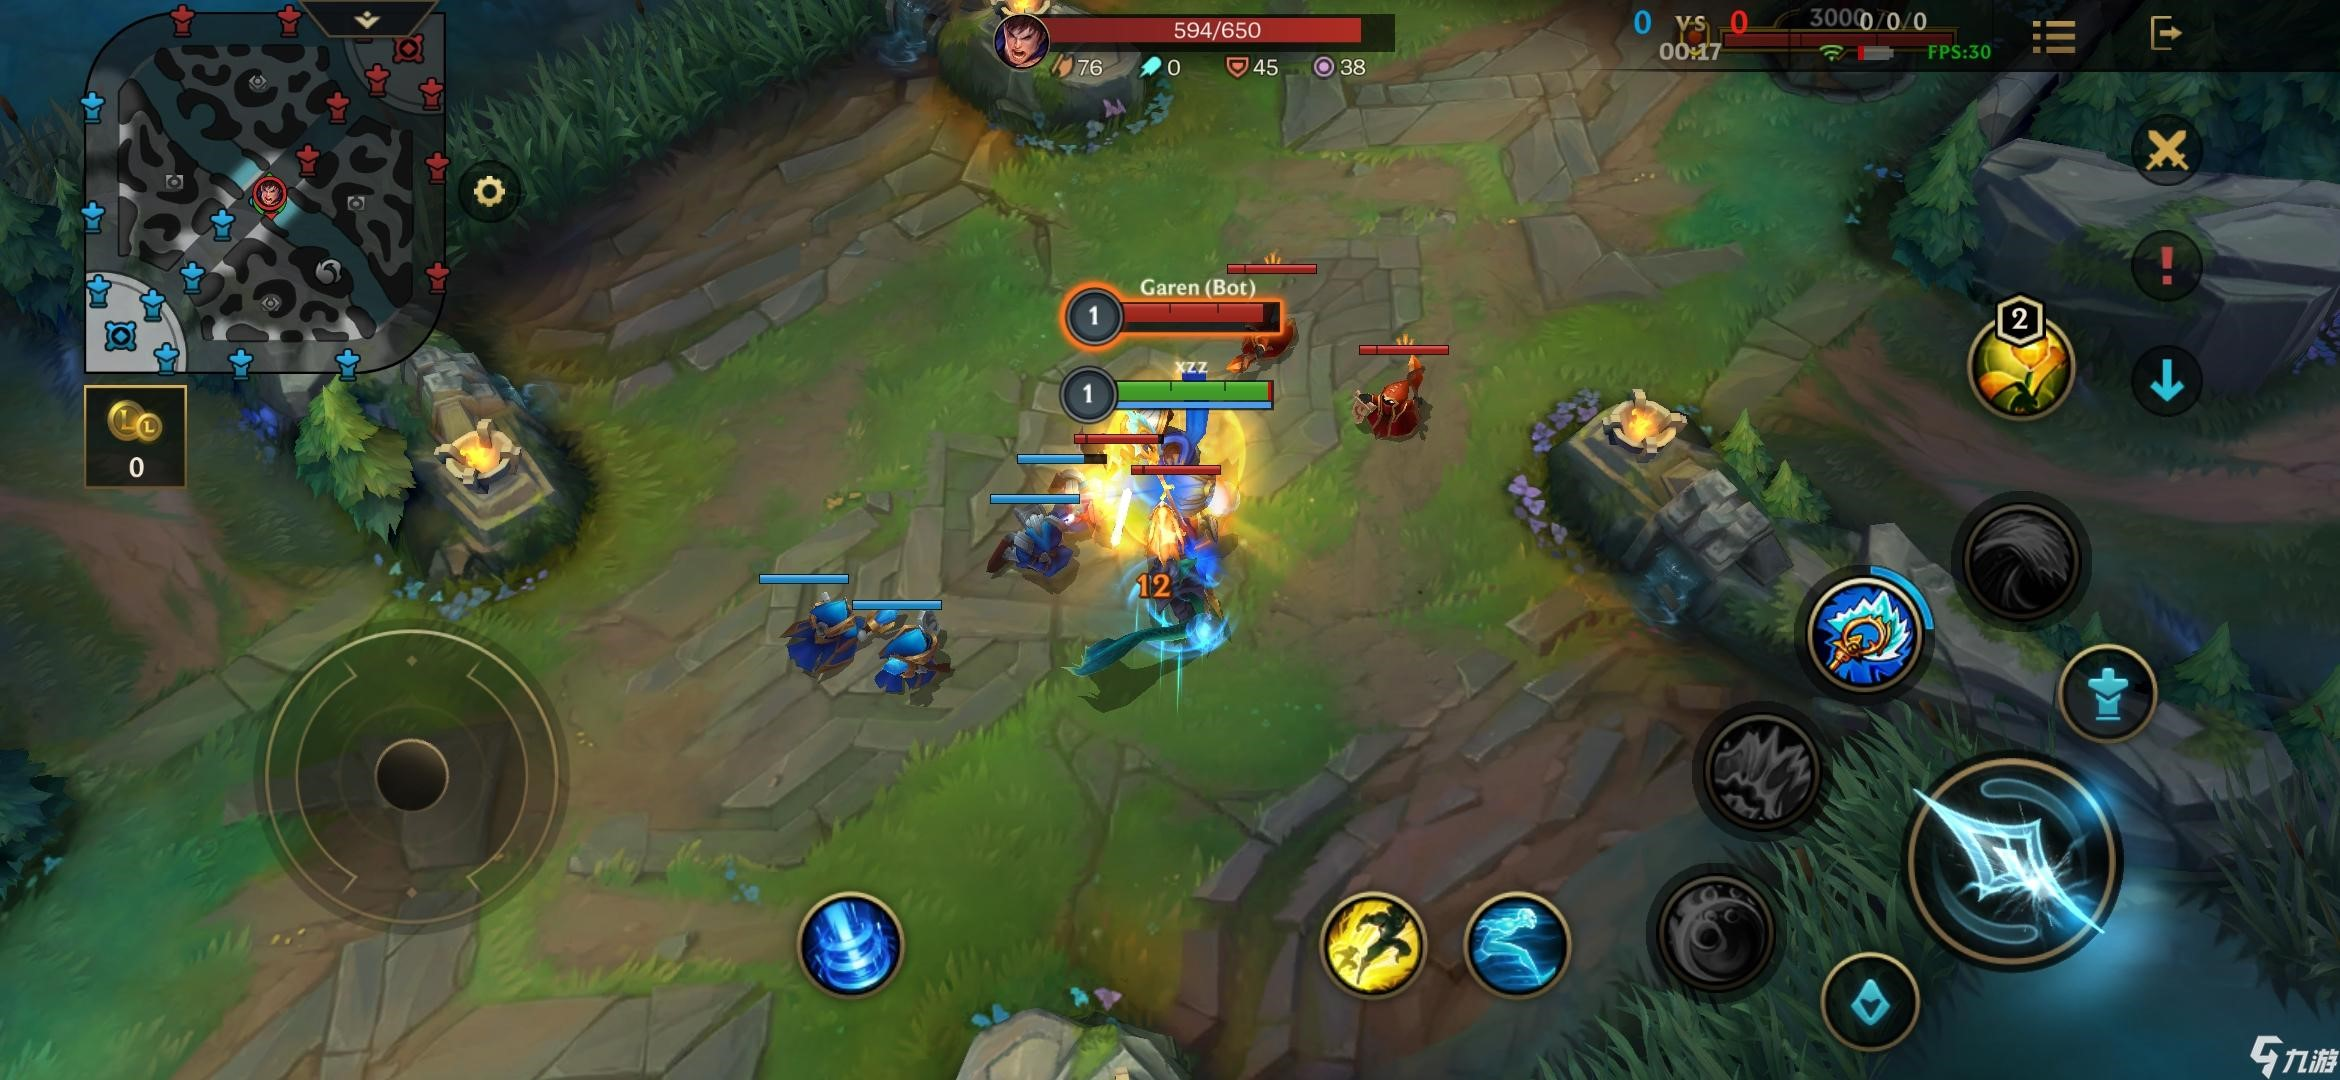 How to Play League of Legends: Wild Rift Mid Nami? Wild Rift Mid Lane Nami Gameplay Recommendation-GameExp